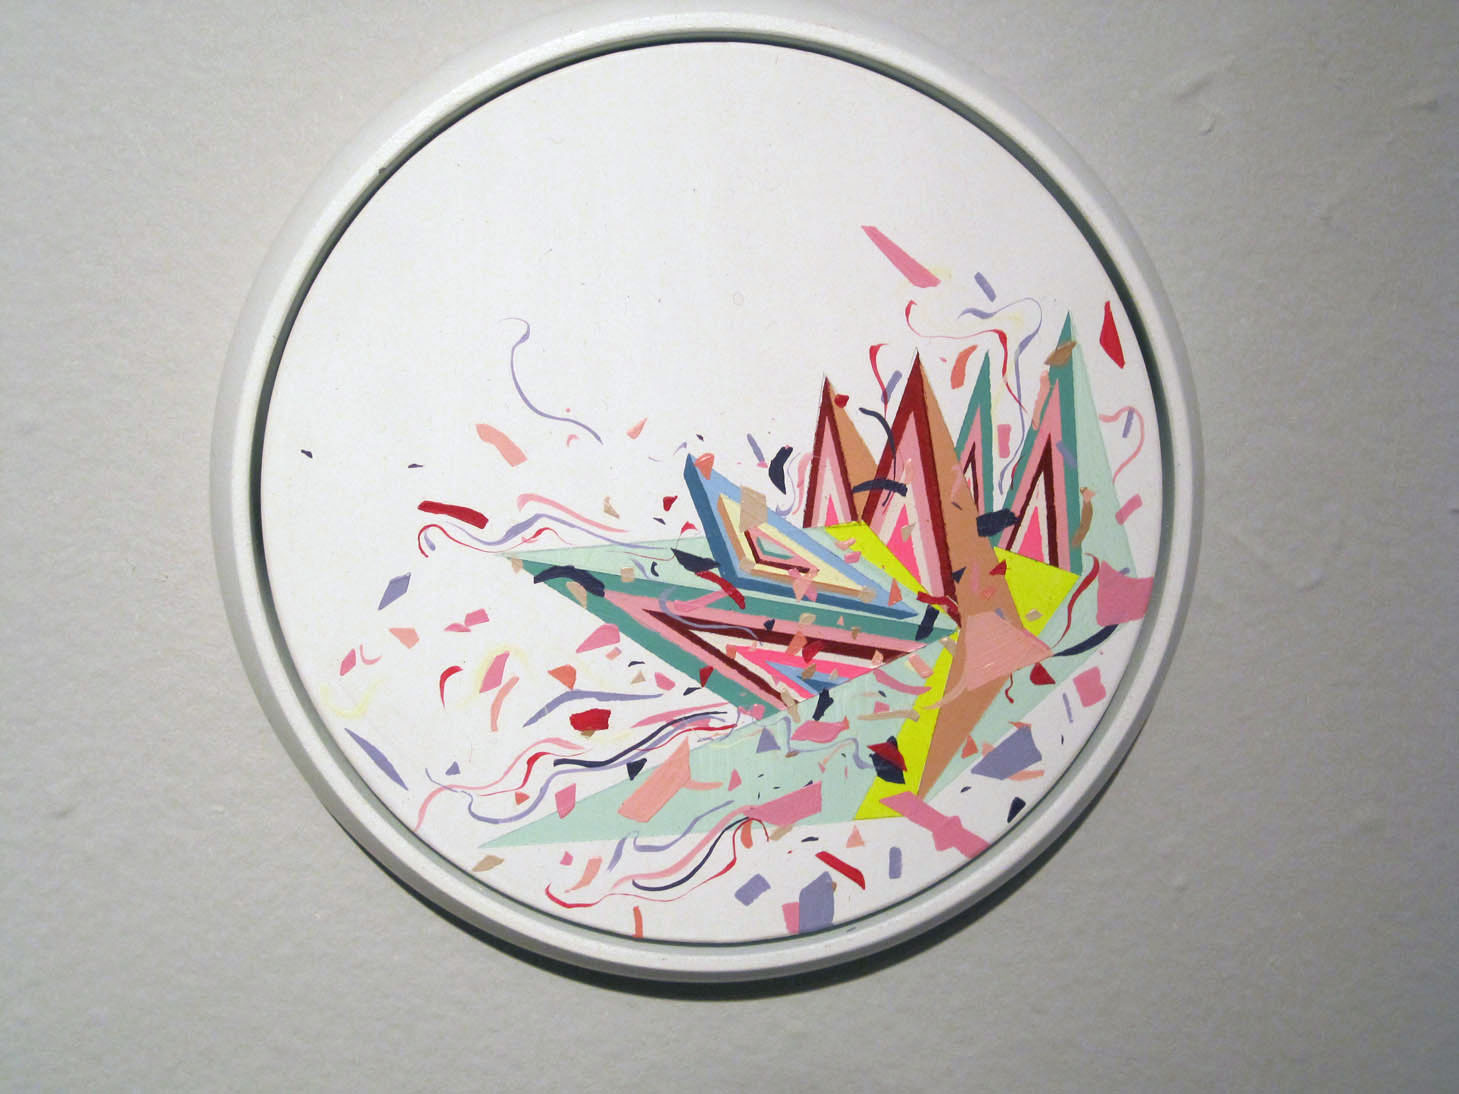 Candy Blizzards - $450 each